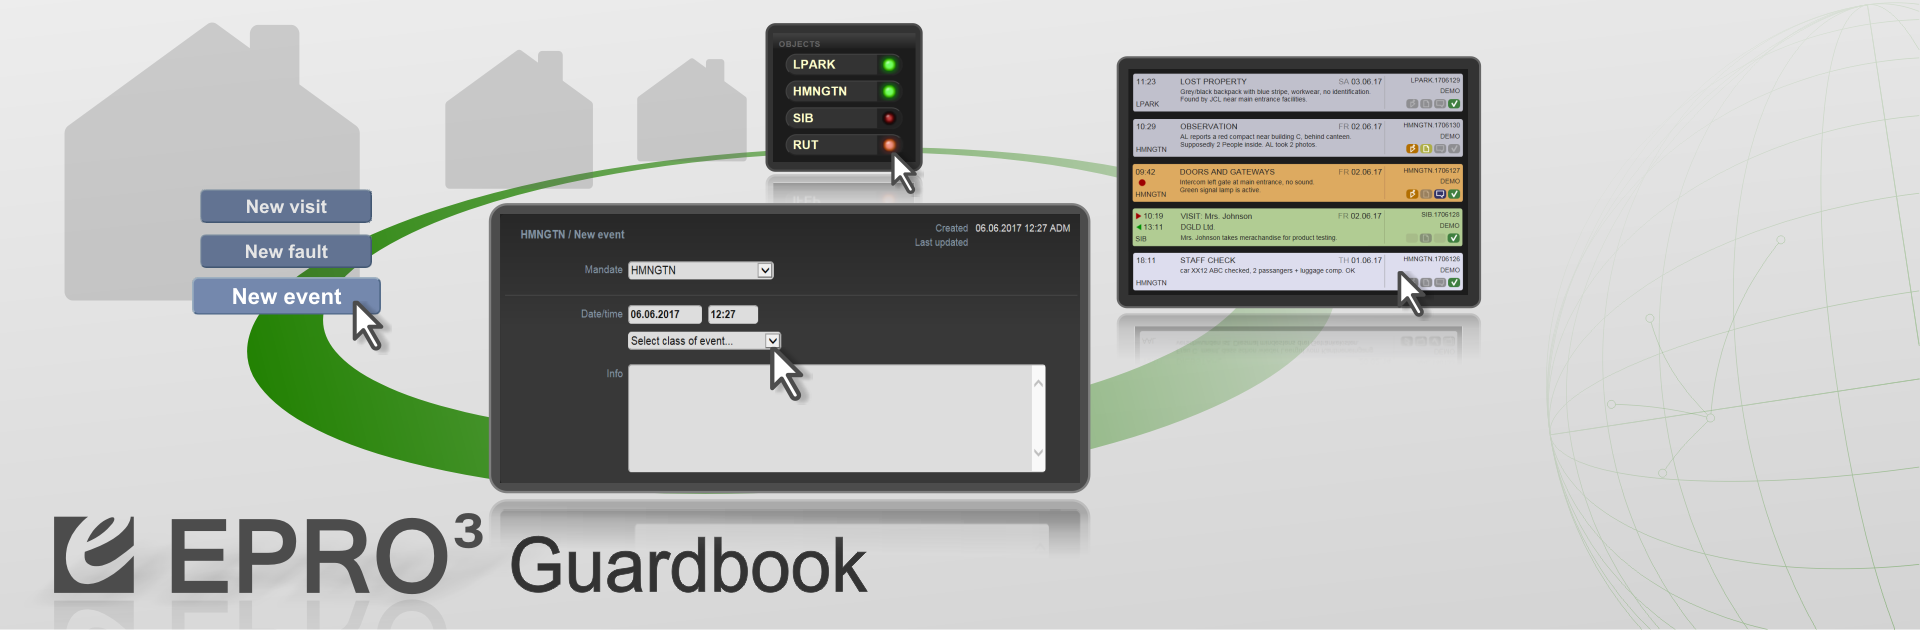 EPRO³ GuRDBOOK surveillance and security